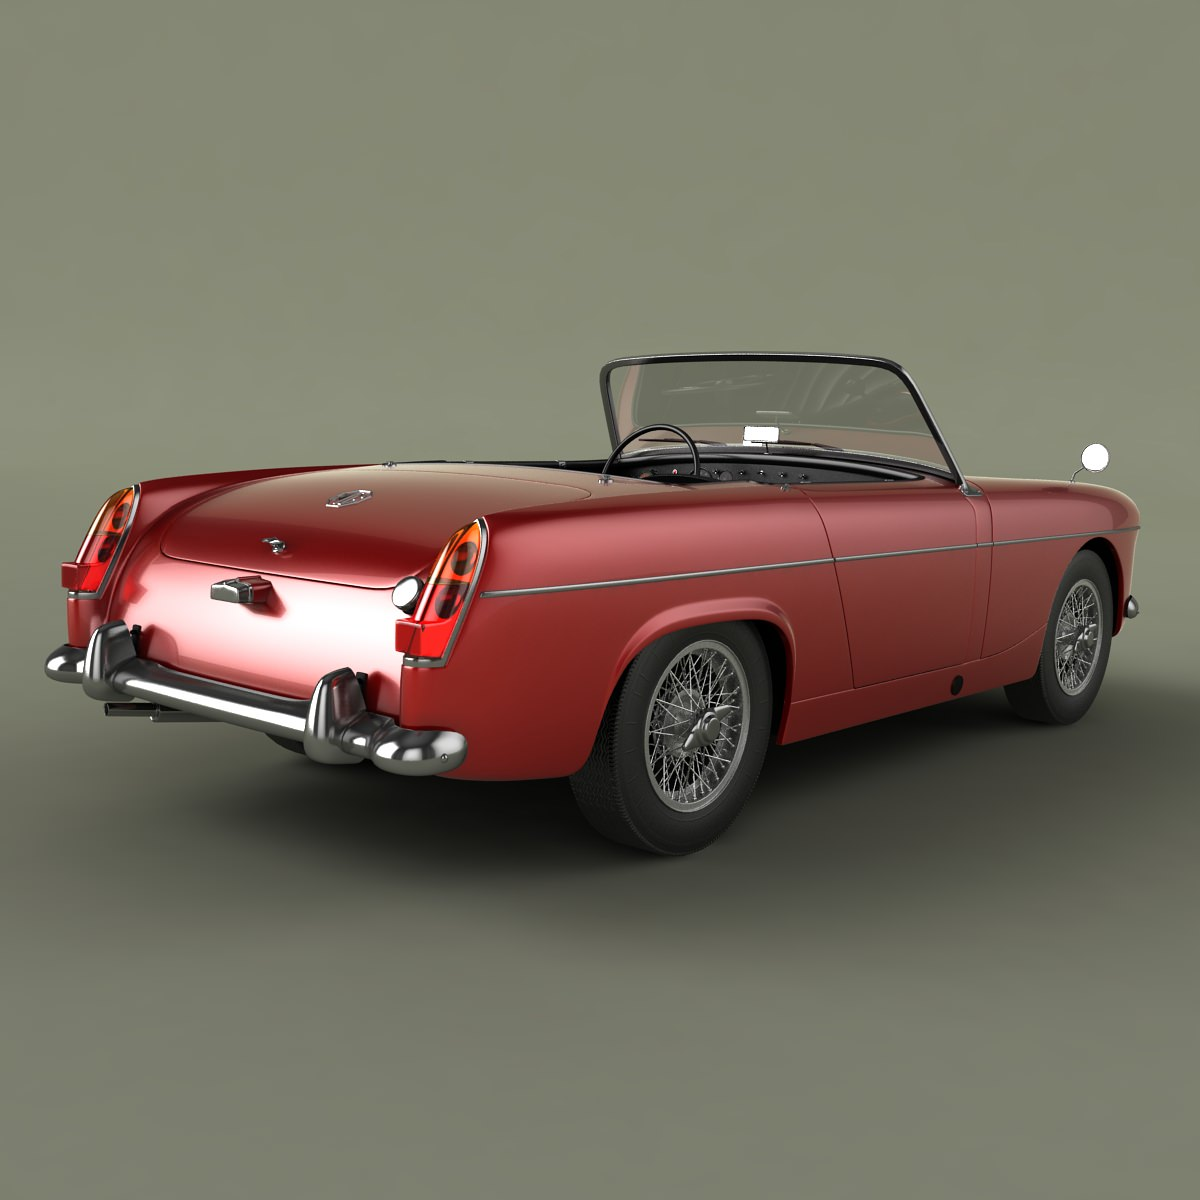 Mg midget models photo 931